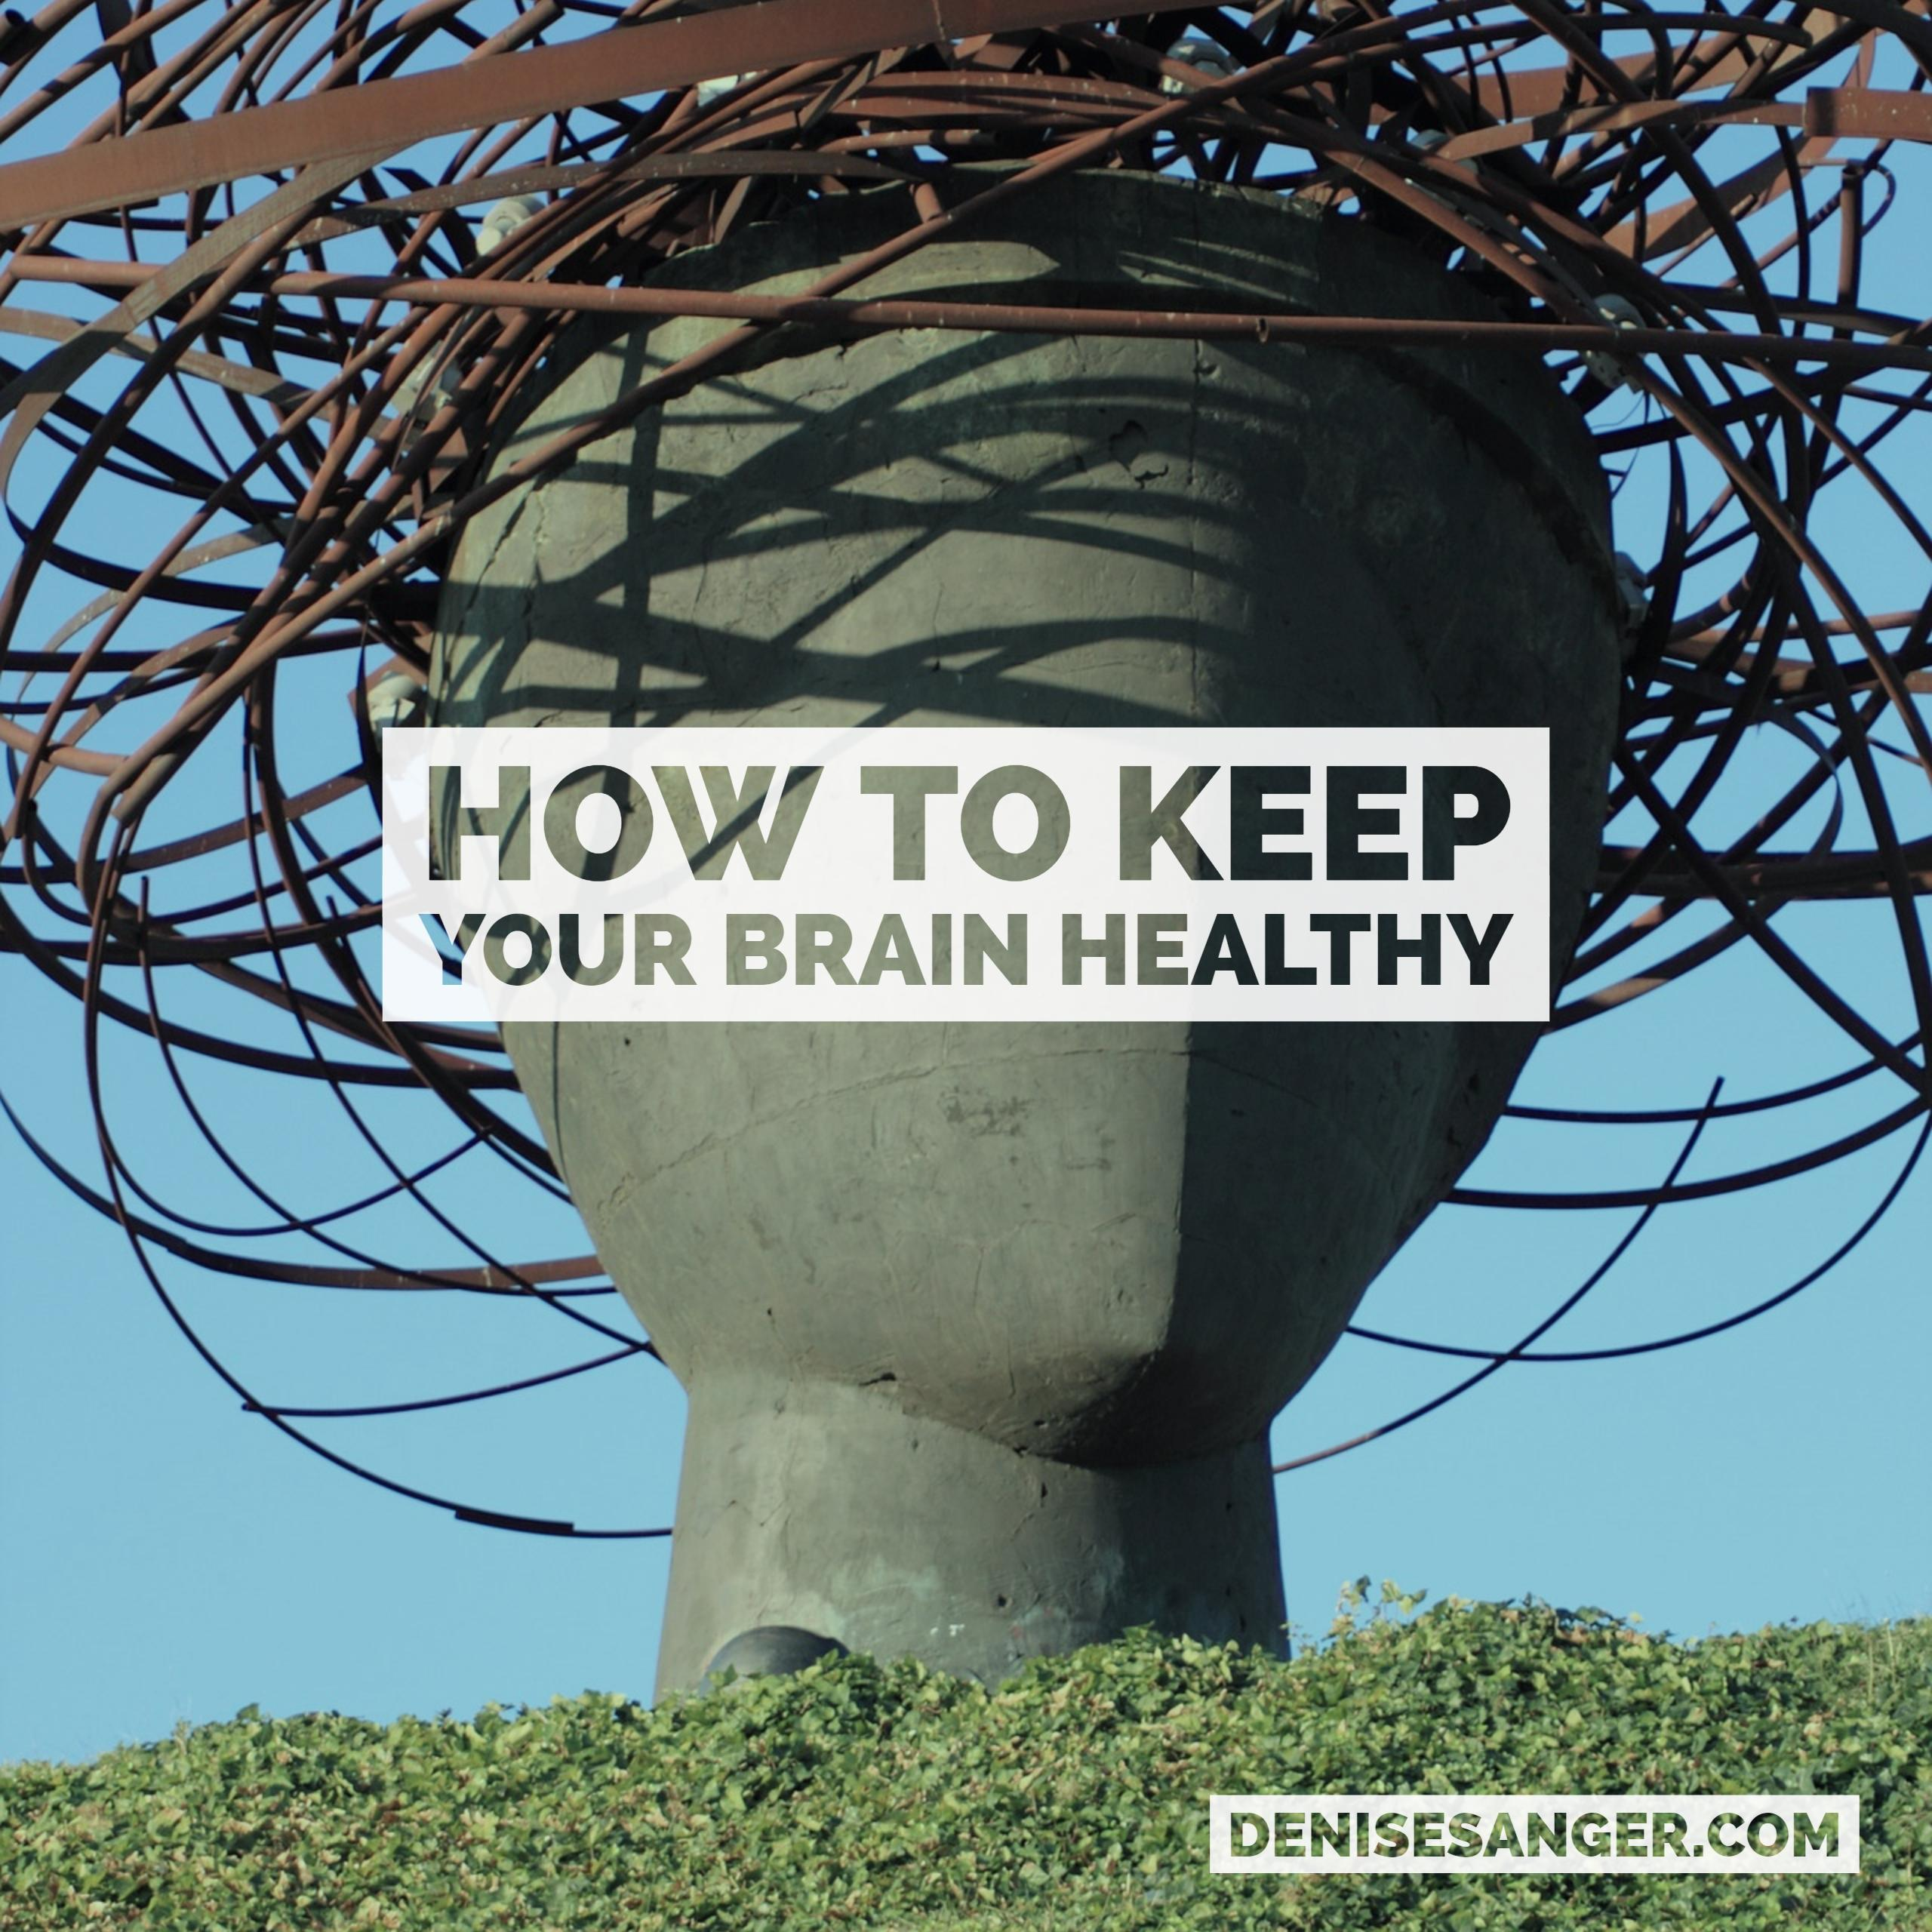 Healthy Living: How To Keep Your Brain Healthy